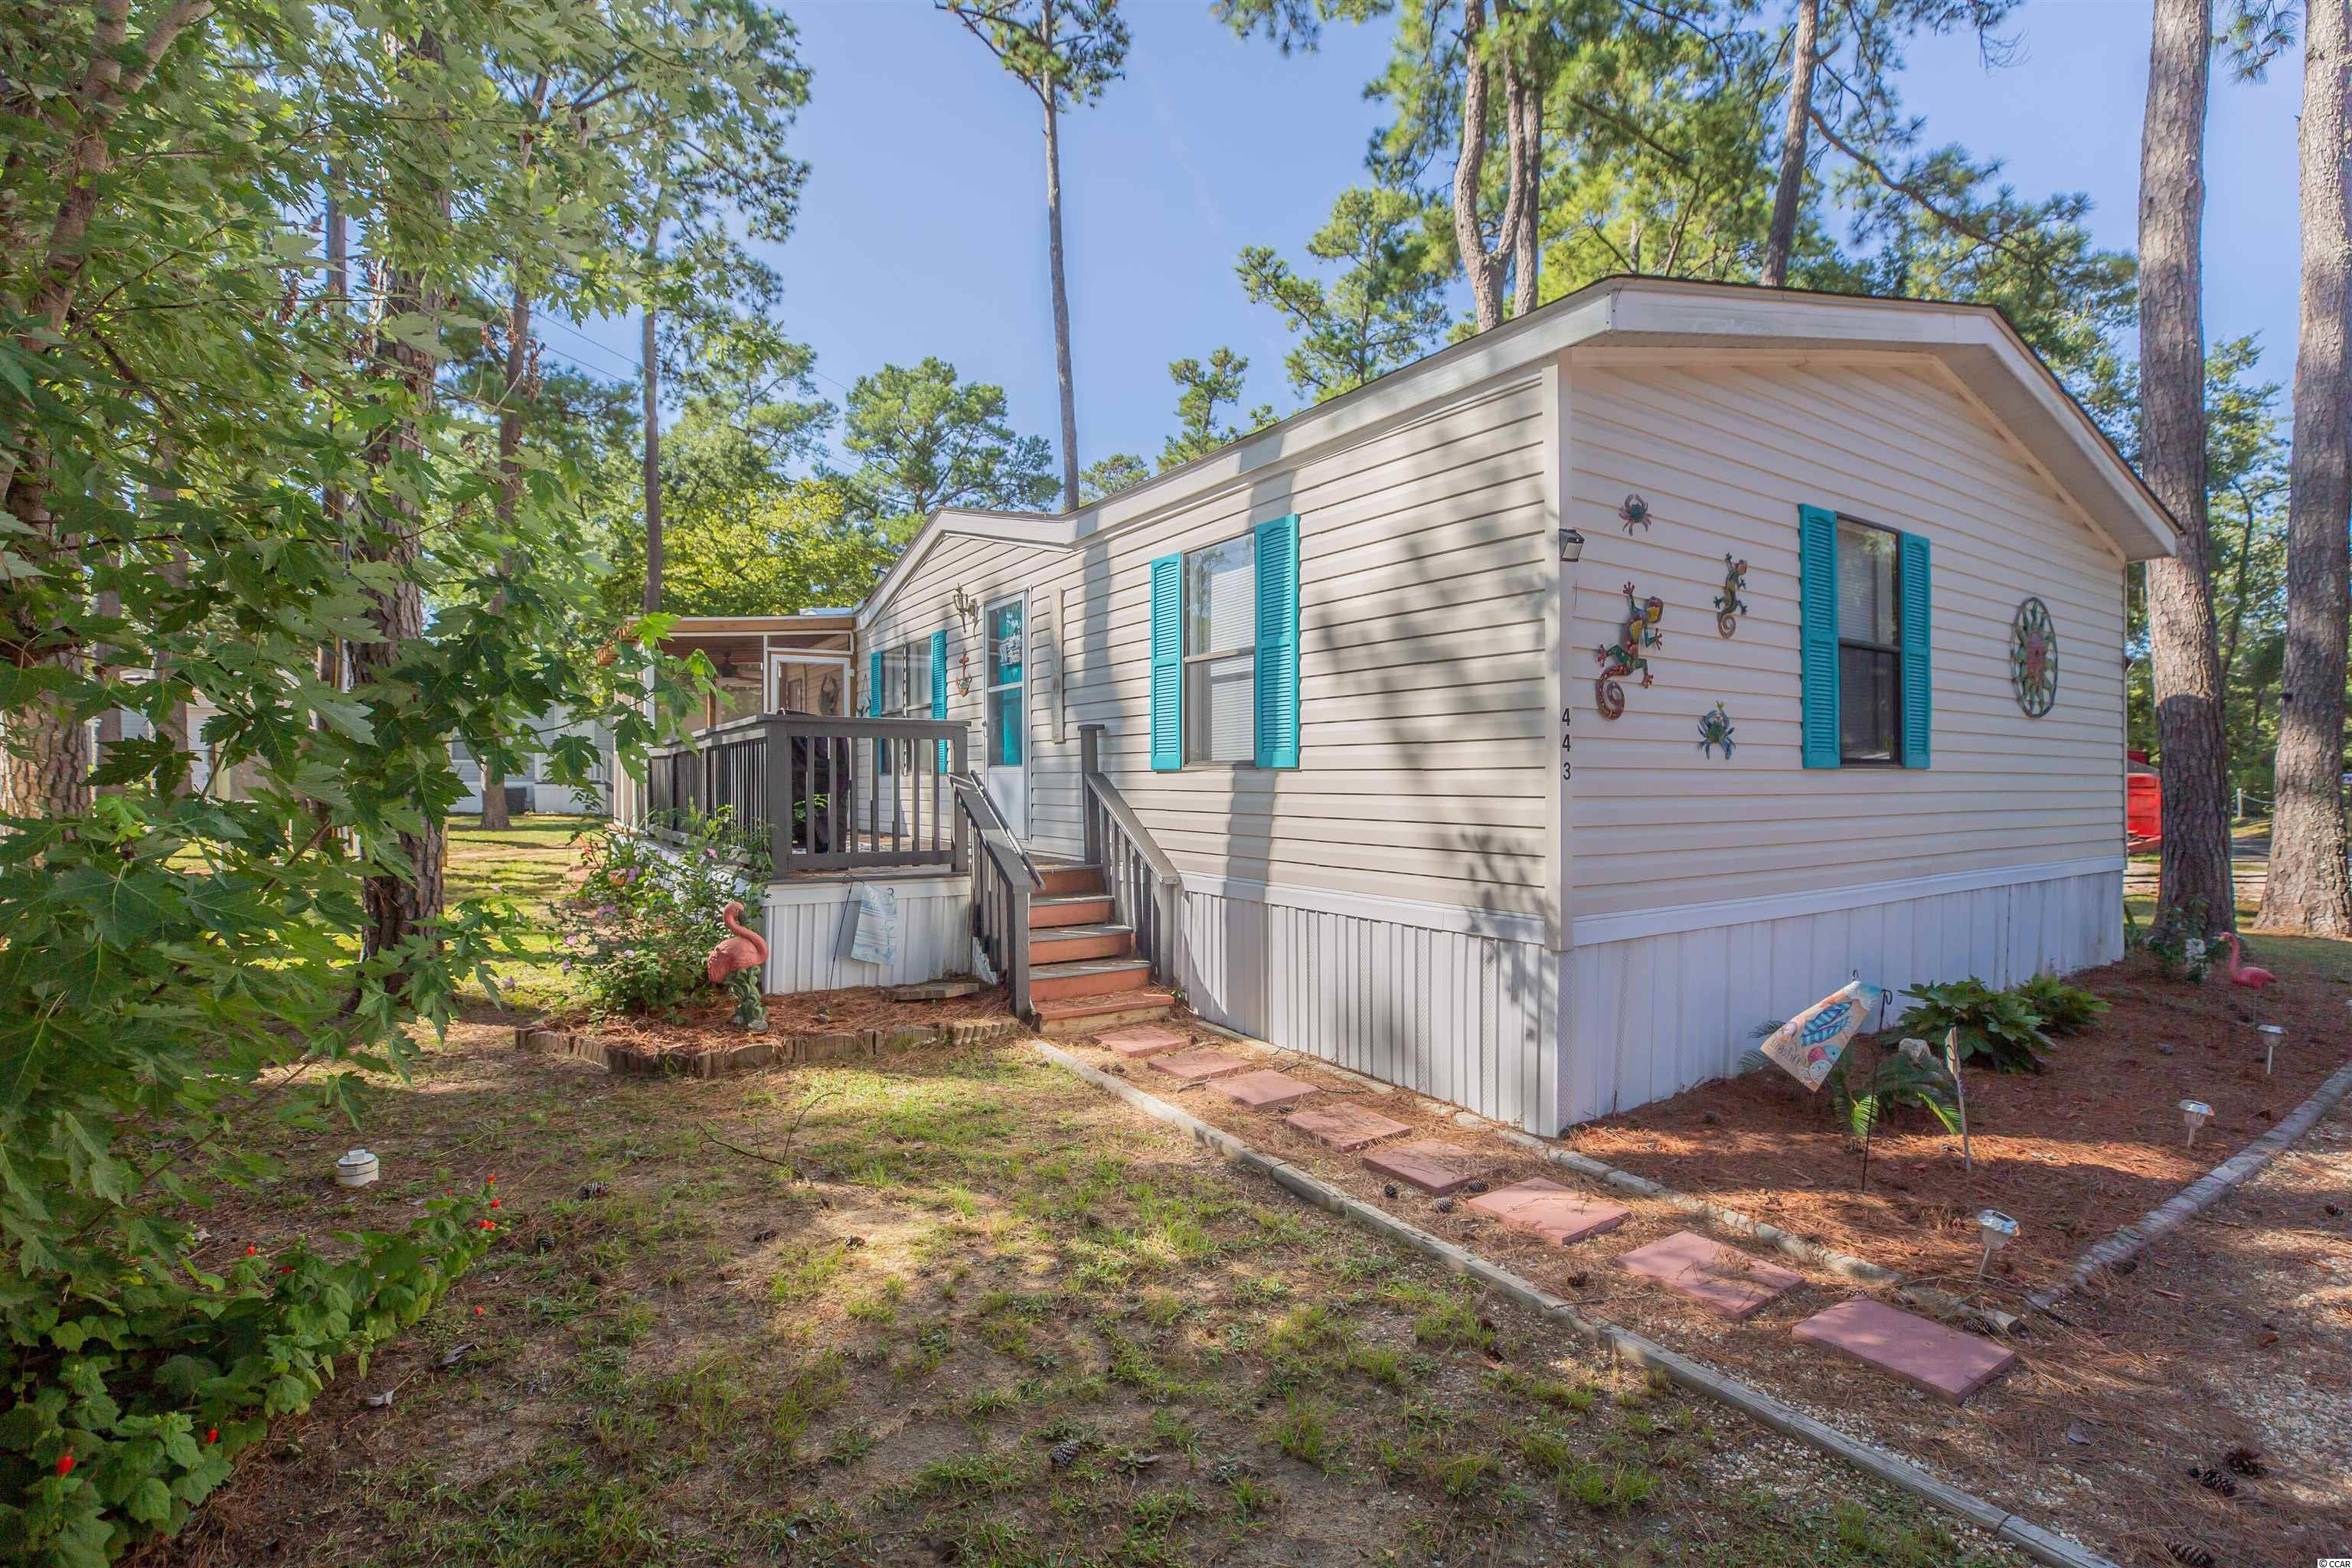 This beautiful 3 bedroom 2 bath double wide home is turn key and ready for an new owner. Home features a new screened in porch with a ceiling fan. Homes comes furnished with the exception of a few items. The roof is only 8 years old and home is on a canal lot! Waterford oaks has a community Gazebo, fishing doc and boat landing. Welcome to our community where you are only a golf cart ride to the marsh and Garden City Beach. With access to the community boat launch you also have direct access to the marsh, as well the ocean with your private boat or canoe.